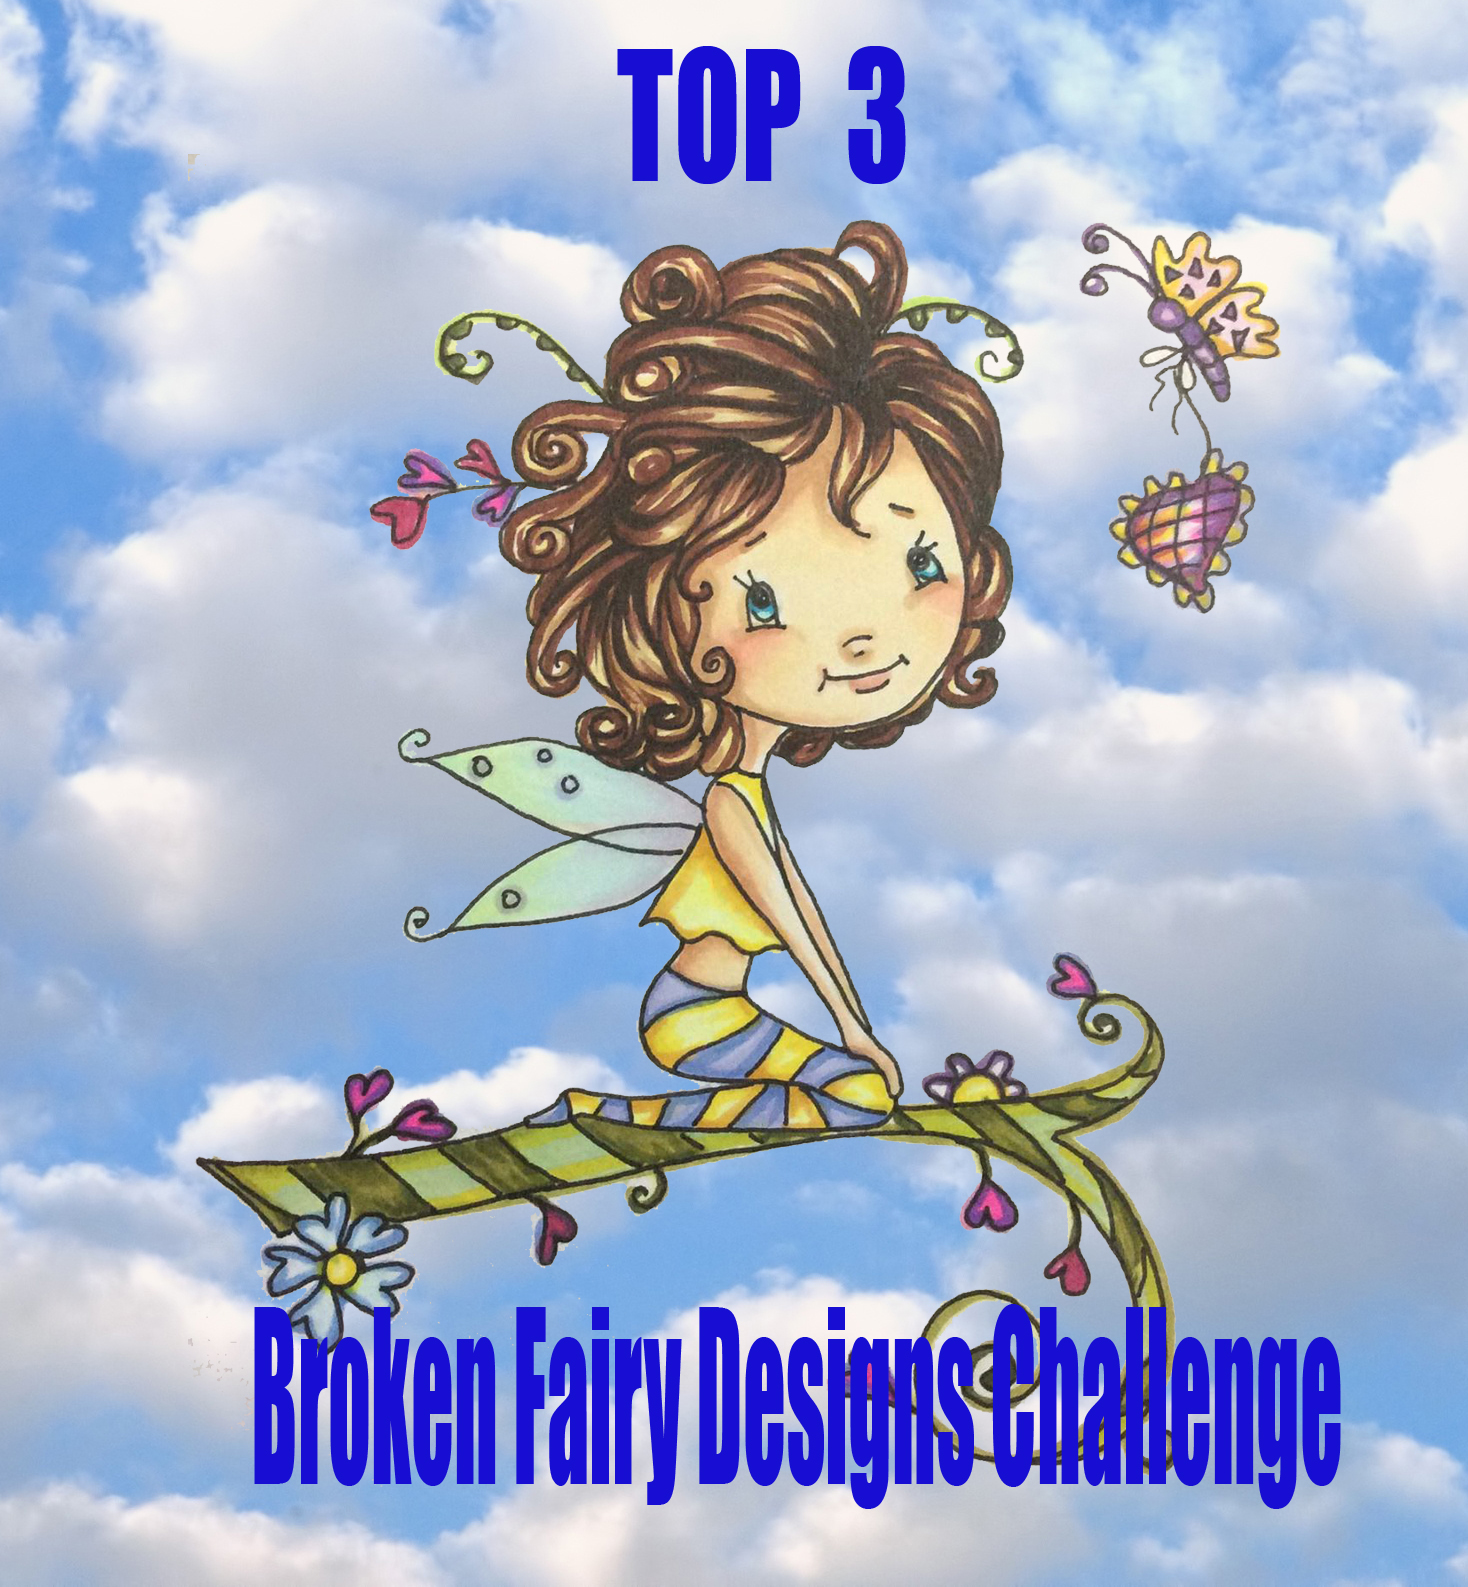 Top 3 - Broken Fairy Challenge